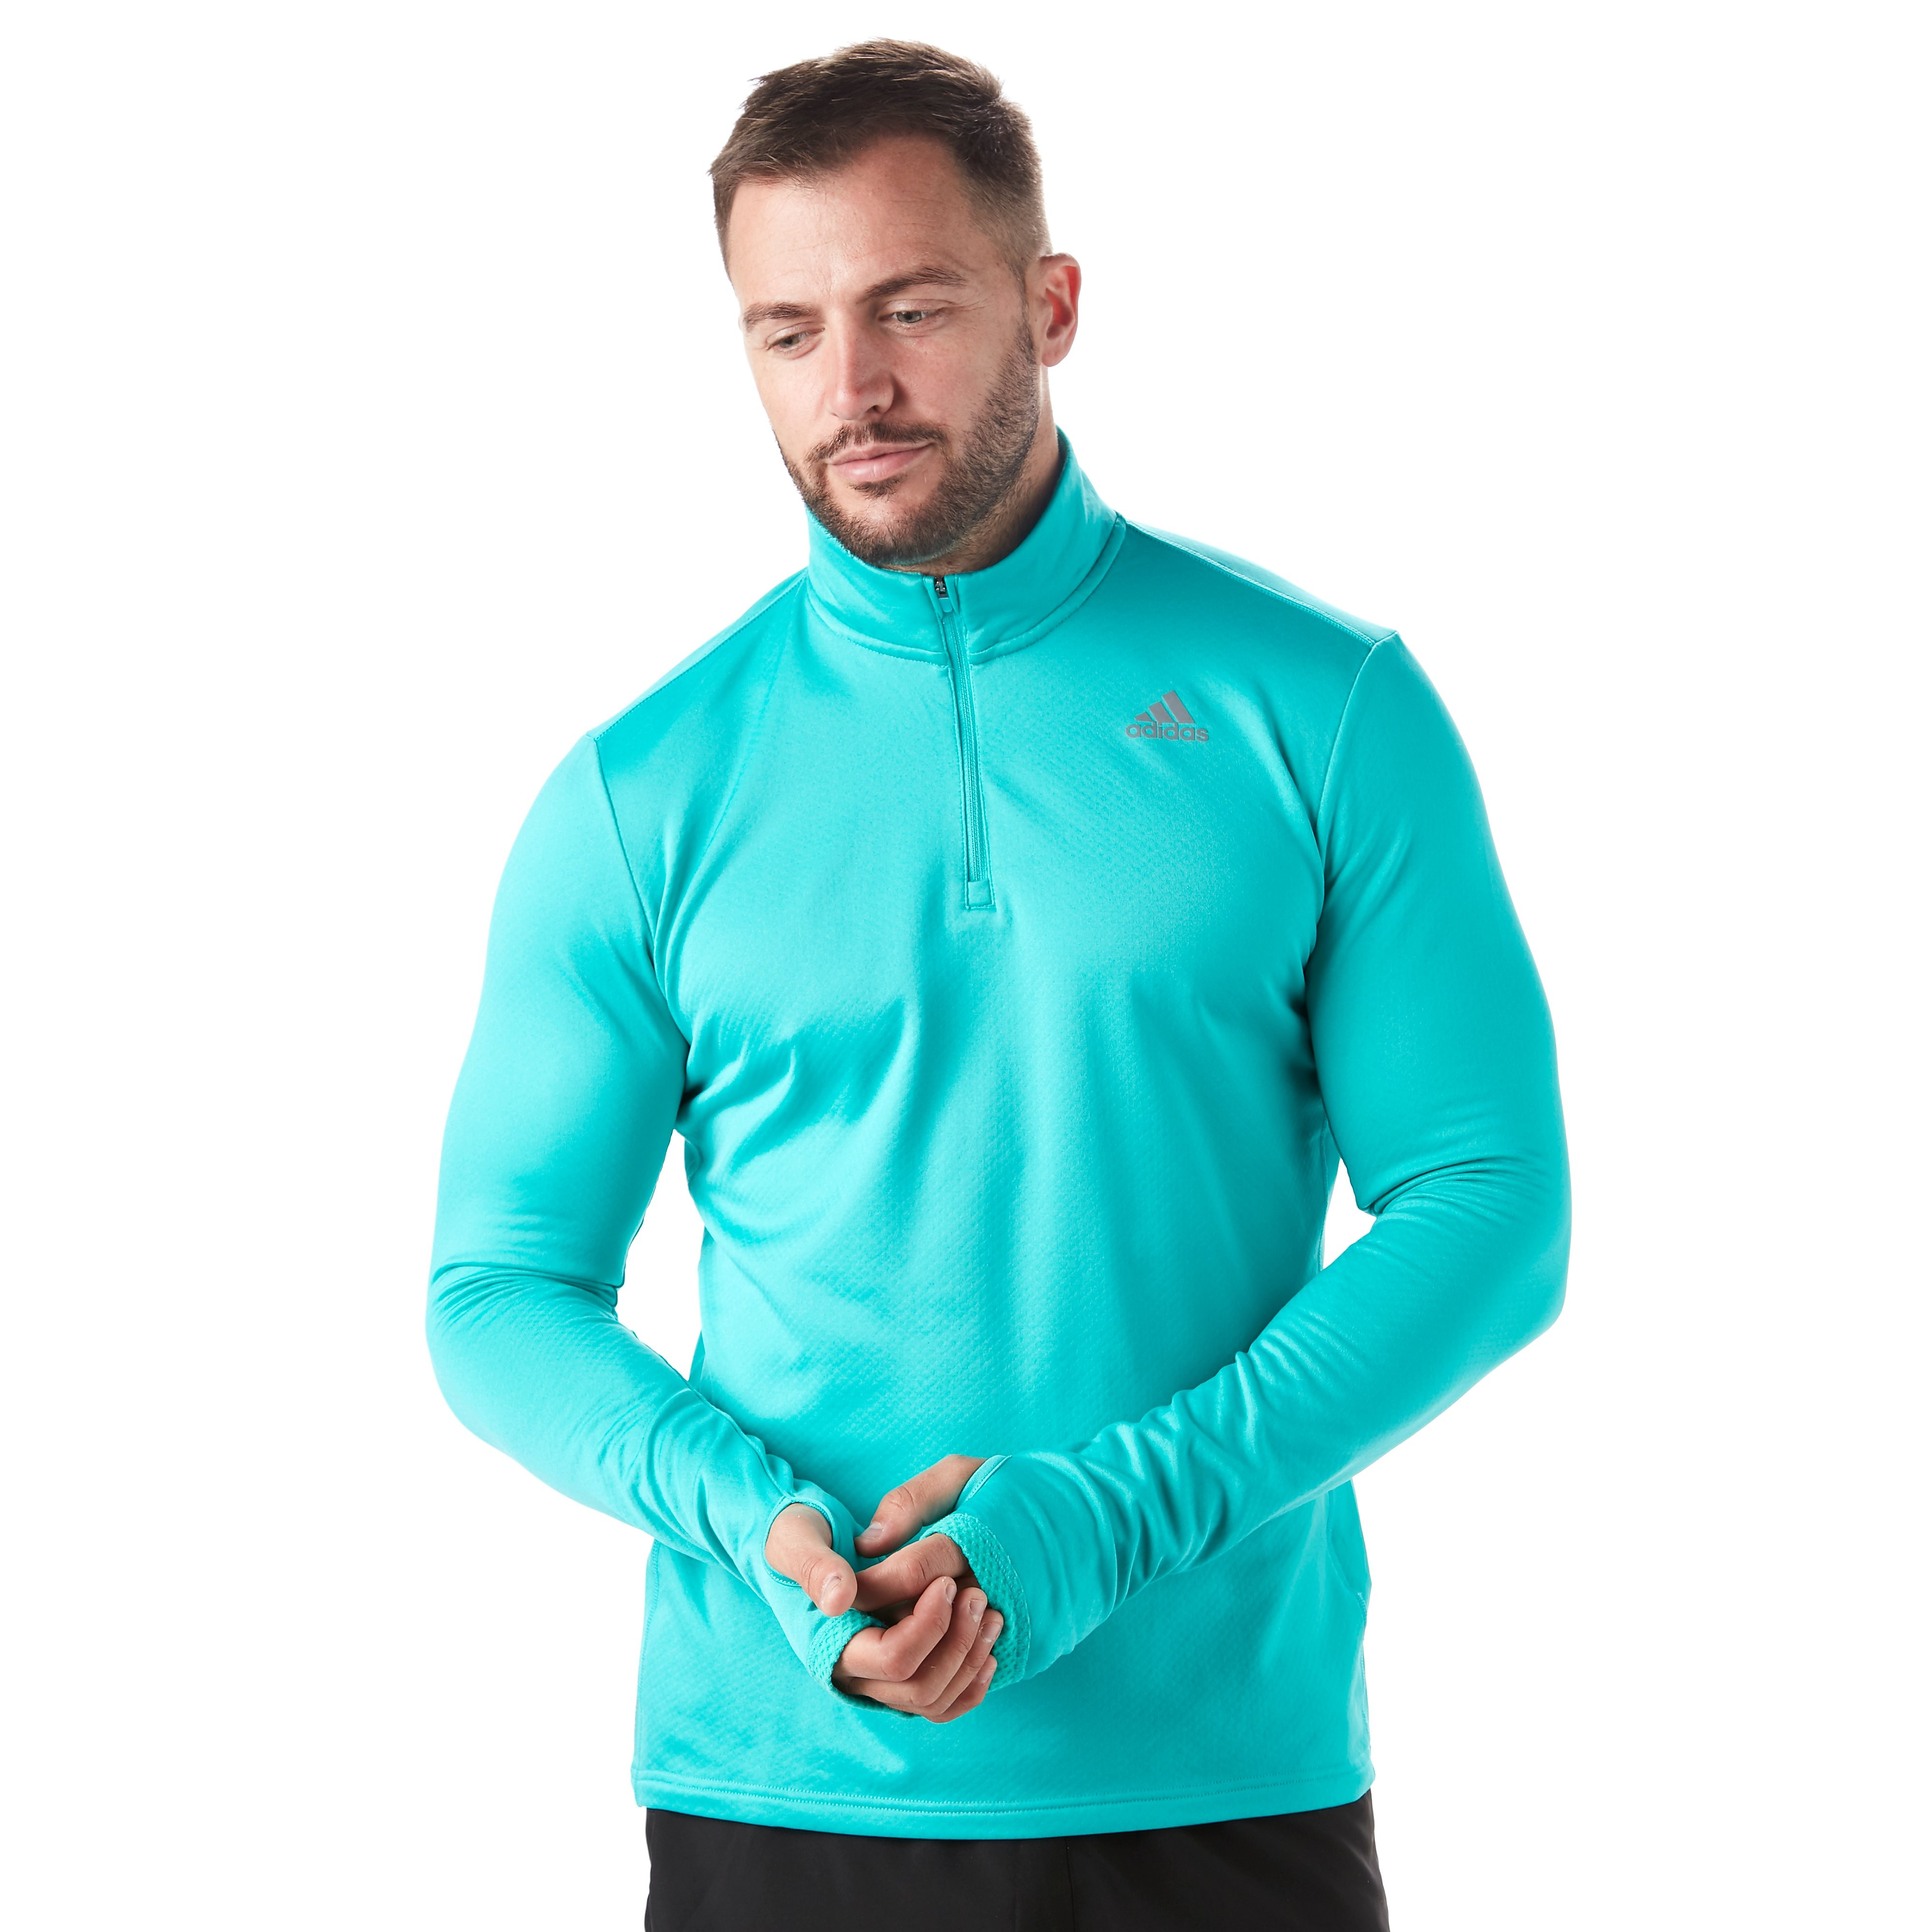 adidas Response Climawarm ¼ Zip Men's Running Top